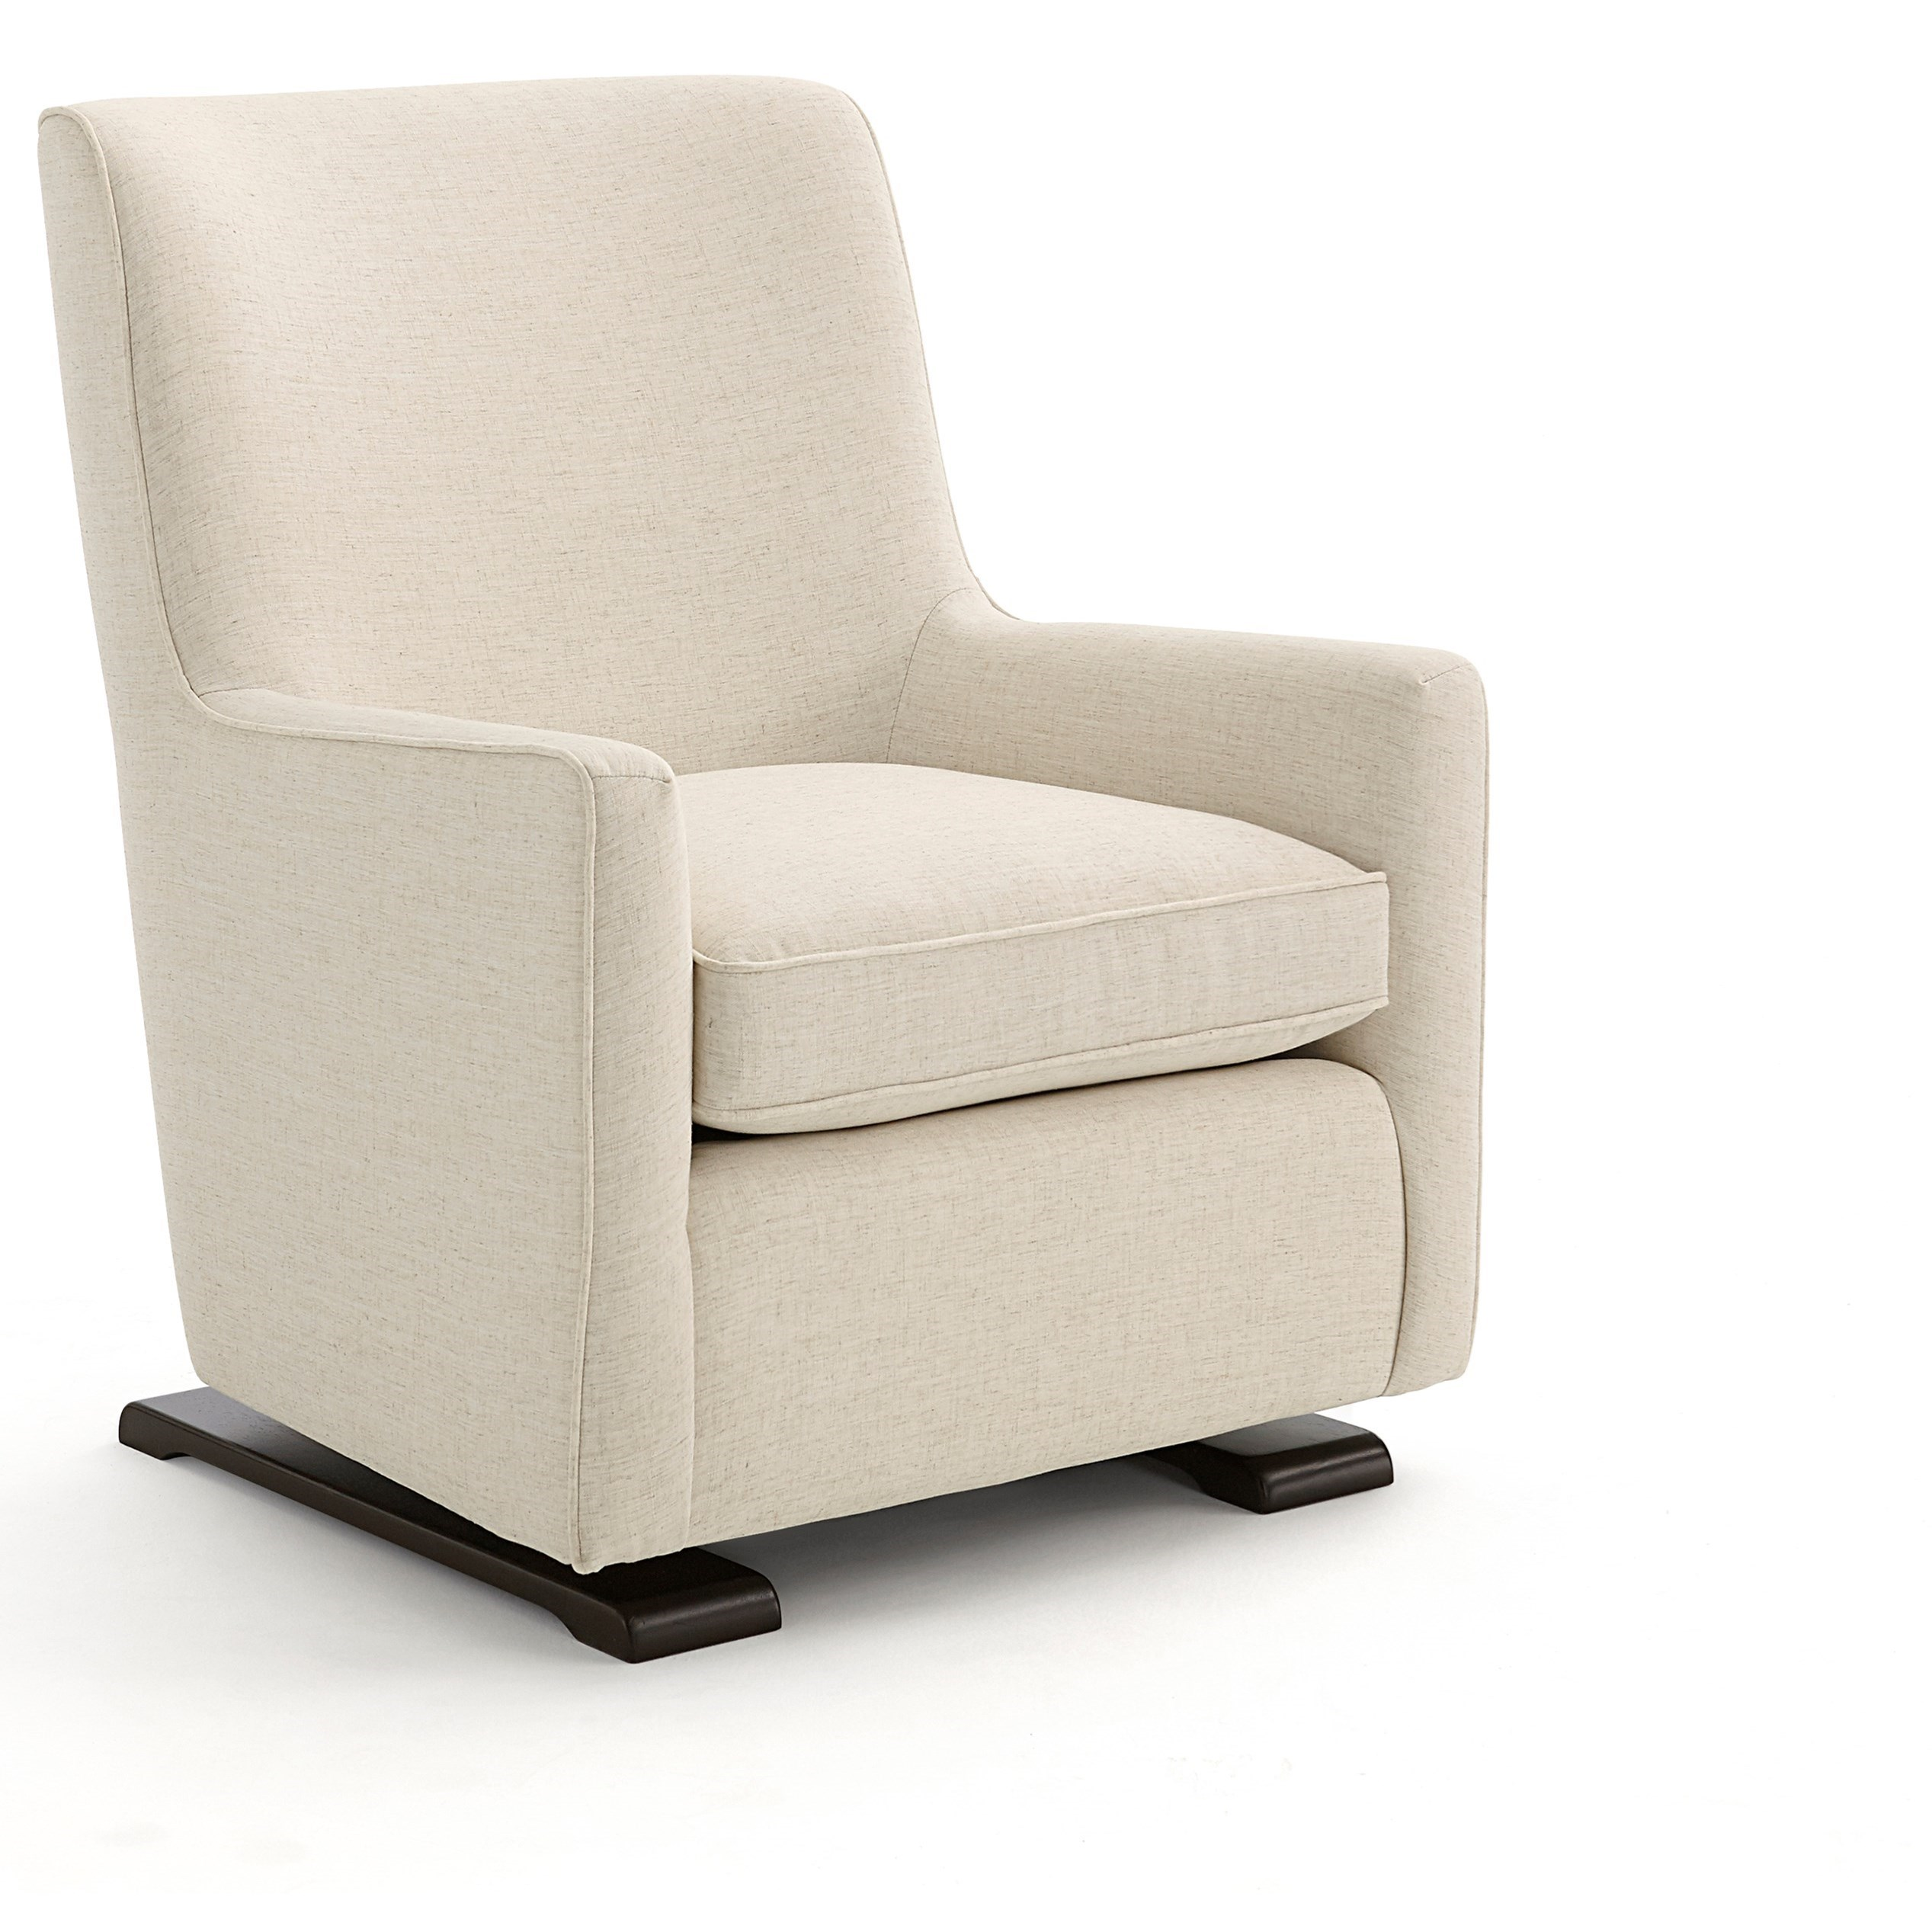 Gliding Chair Coral Contemporary Swivel Gliding Chair With Wood Runners By Best Home Furnishings At Dunk Bright Furniture